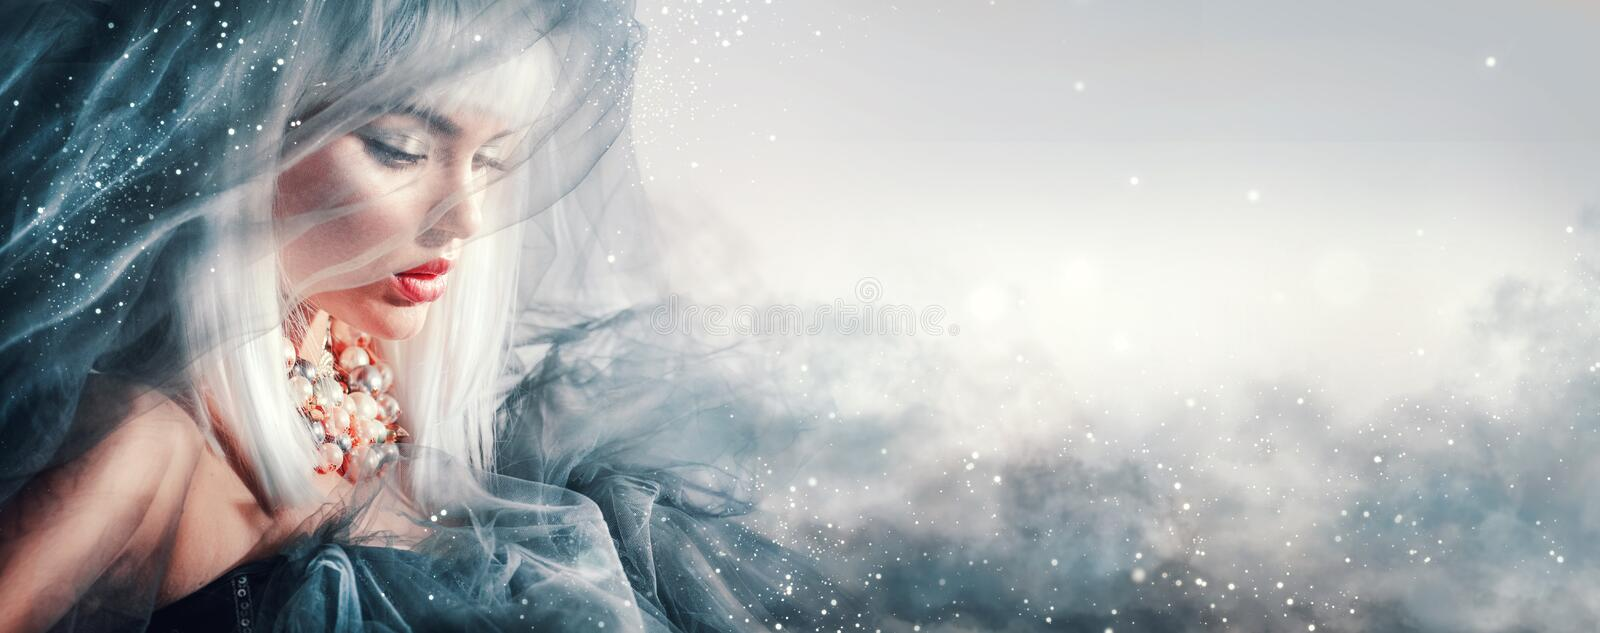 Download Beauty Woman Portrait. Winter Makeup And Hairstyle Stock Image - Image: 103202613